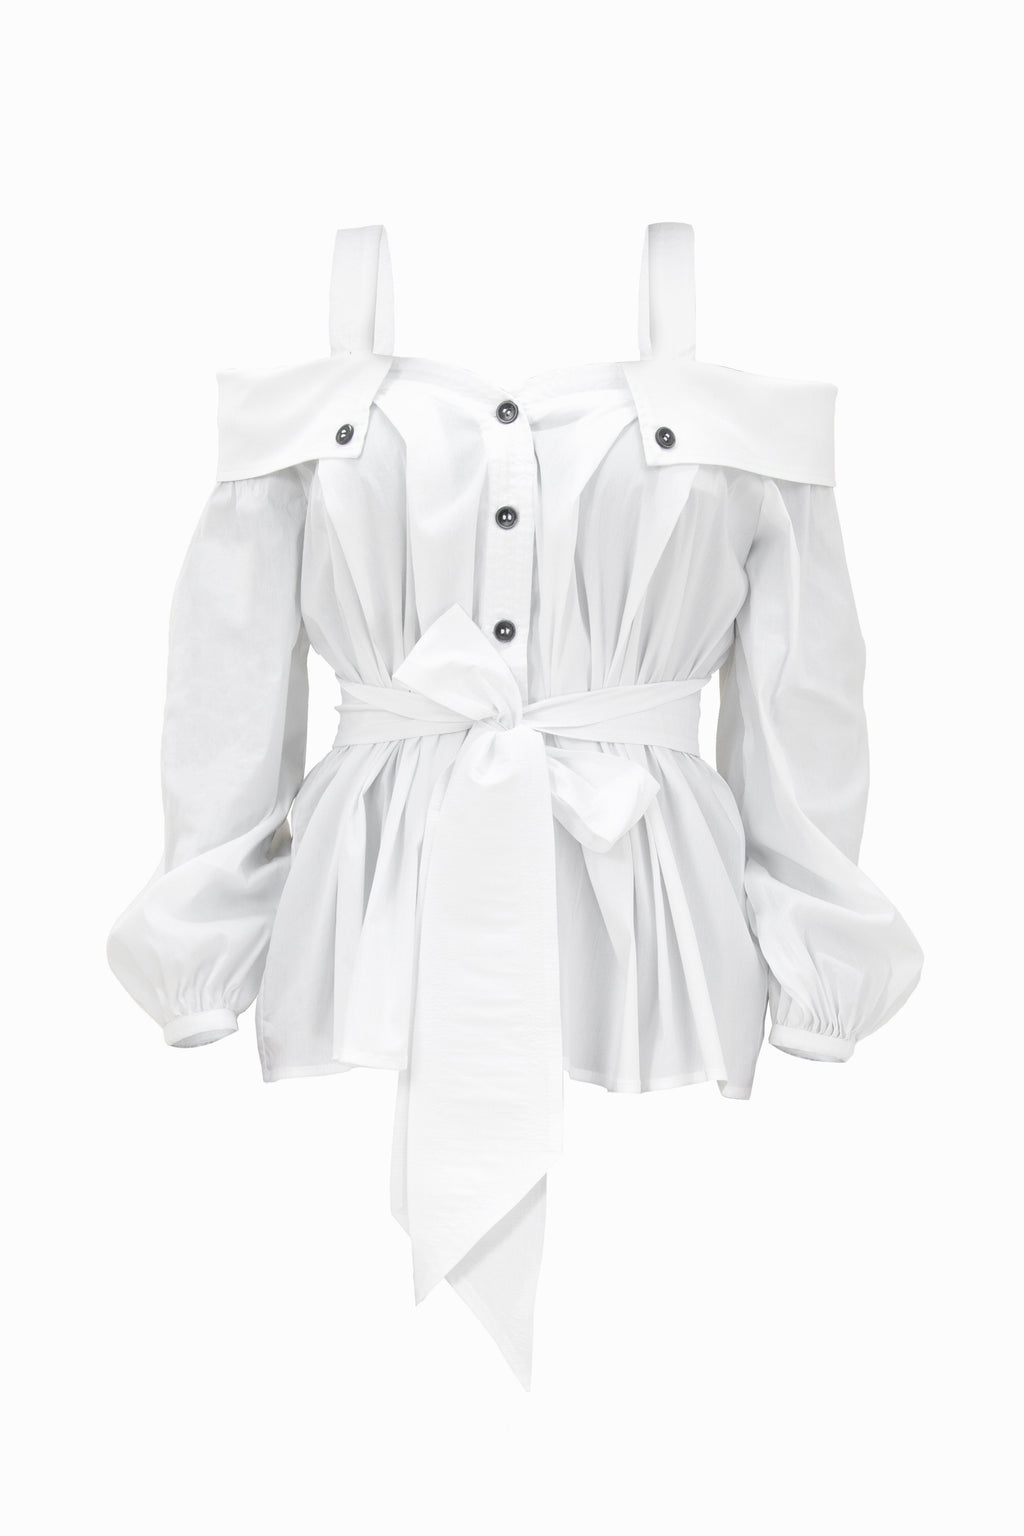 Classic Innovation Off-Shoulder White Cotton Shirt - Tia Dorraine London